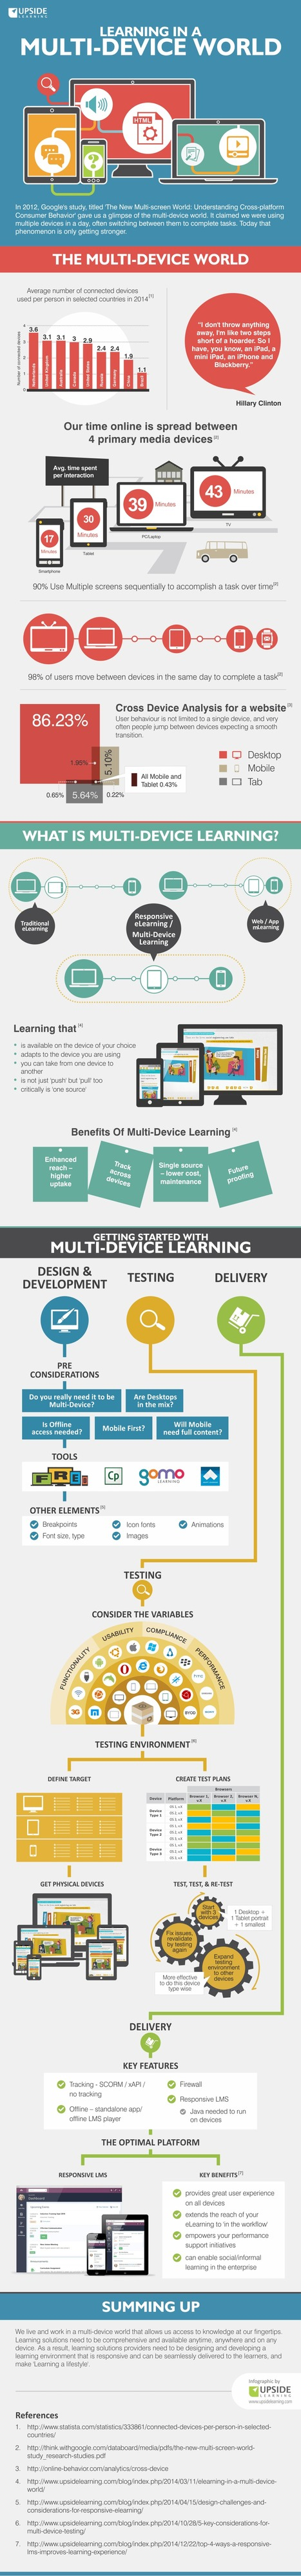 Learning in a Multi-Device World Infographic - e-Learning Infographics | Elementary Technology Education | Scoop.it